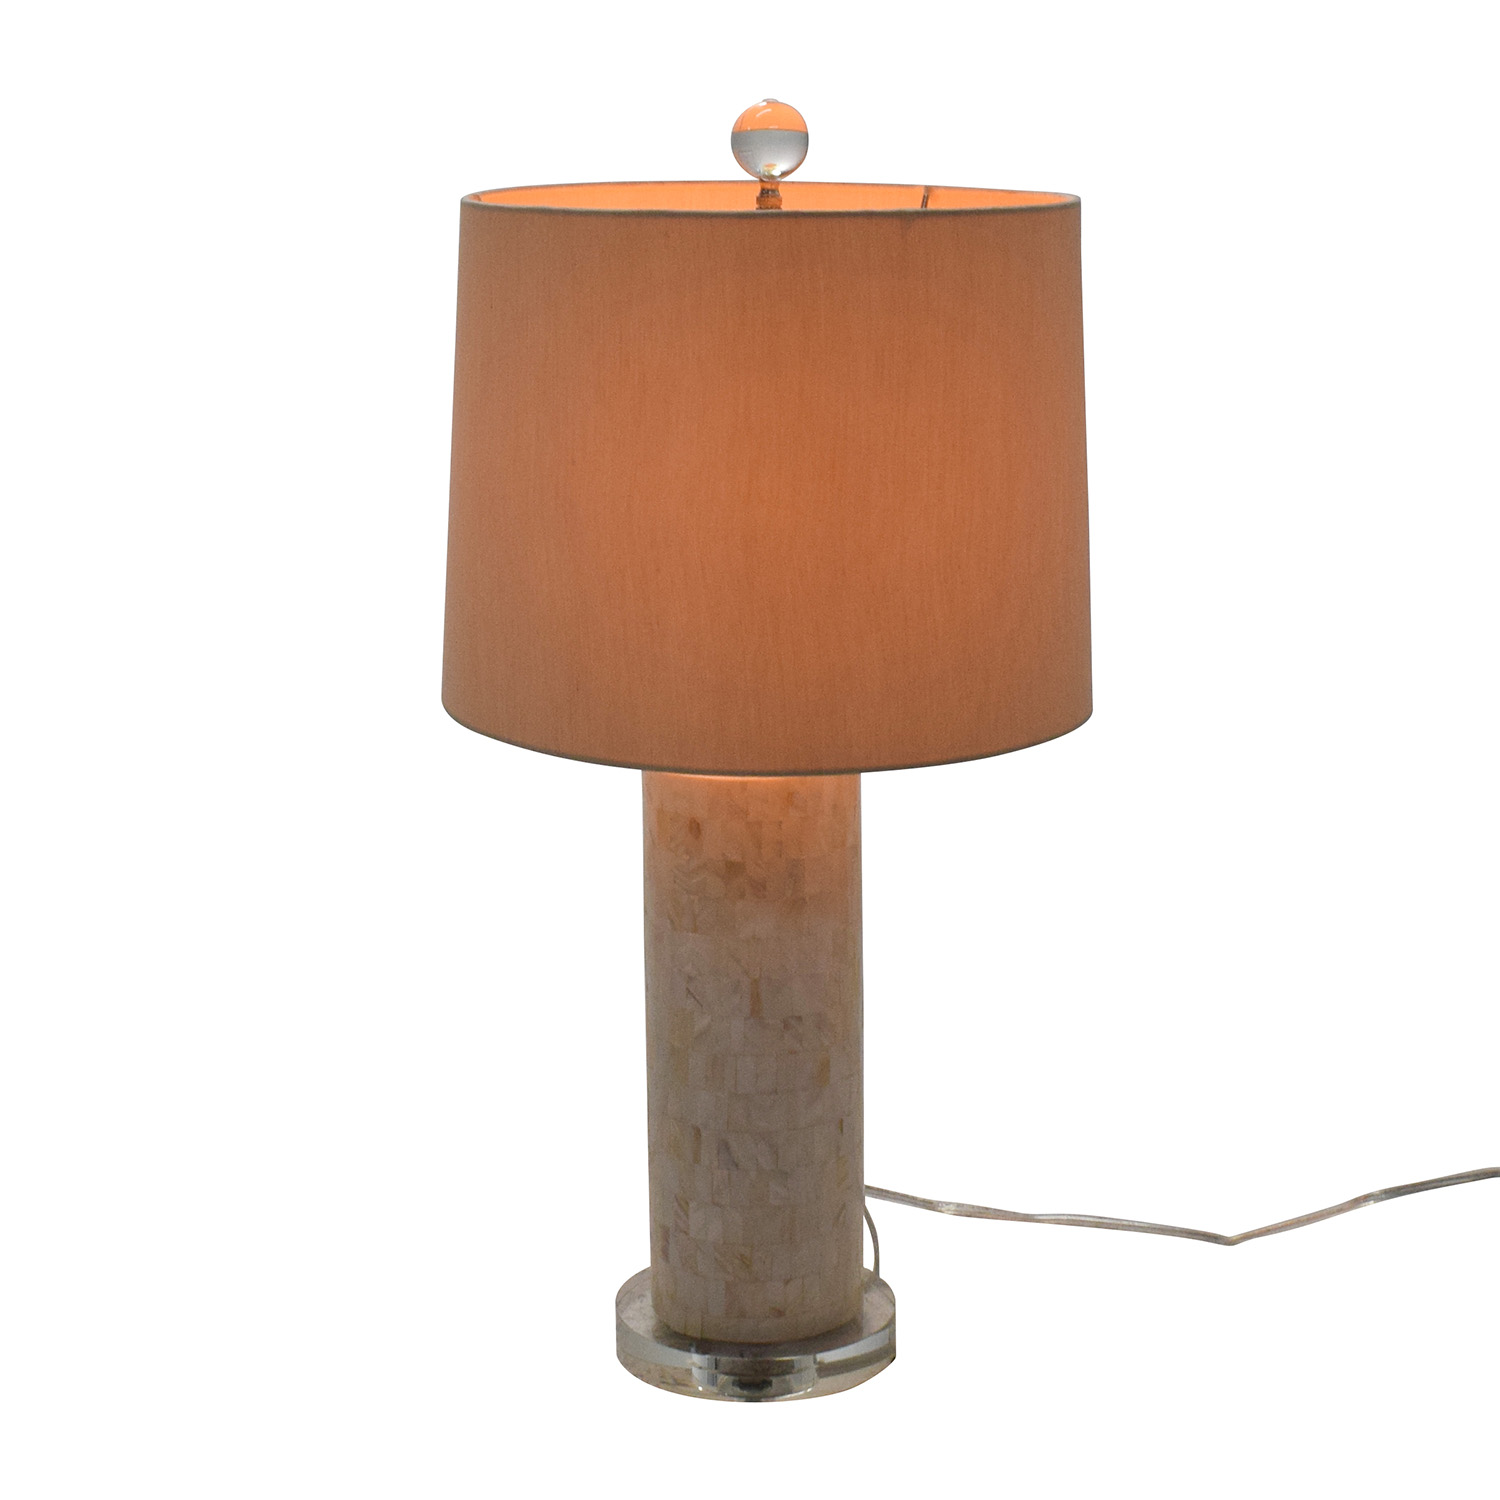 Horchow Horchow Regina Andrew Design Table Lamp nyc